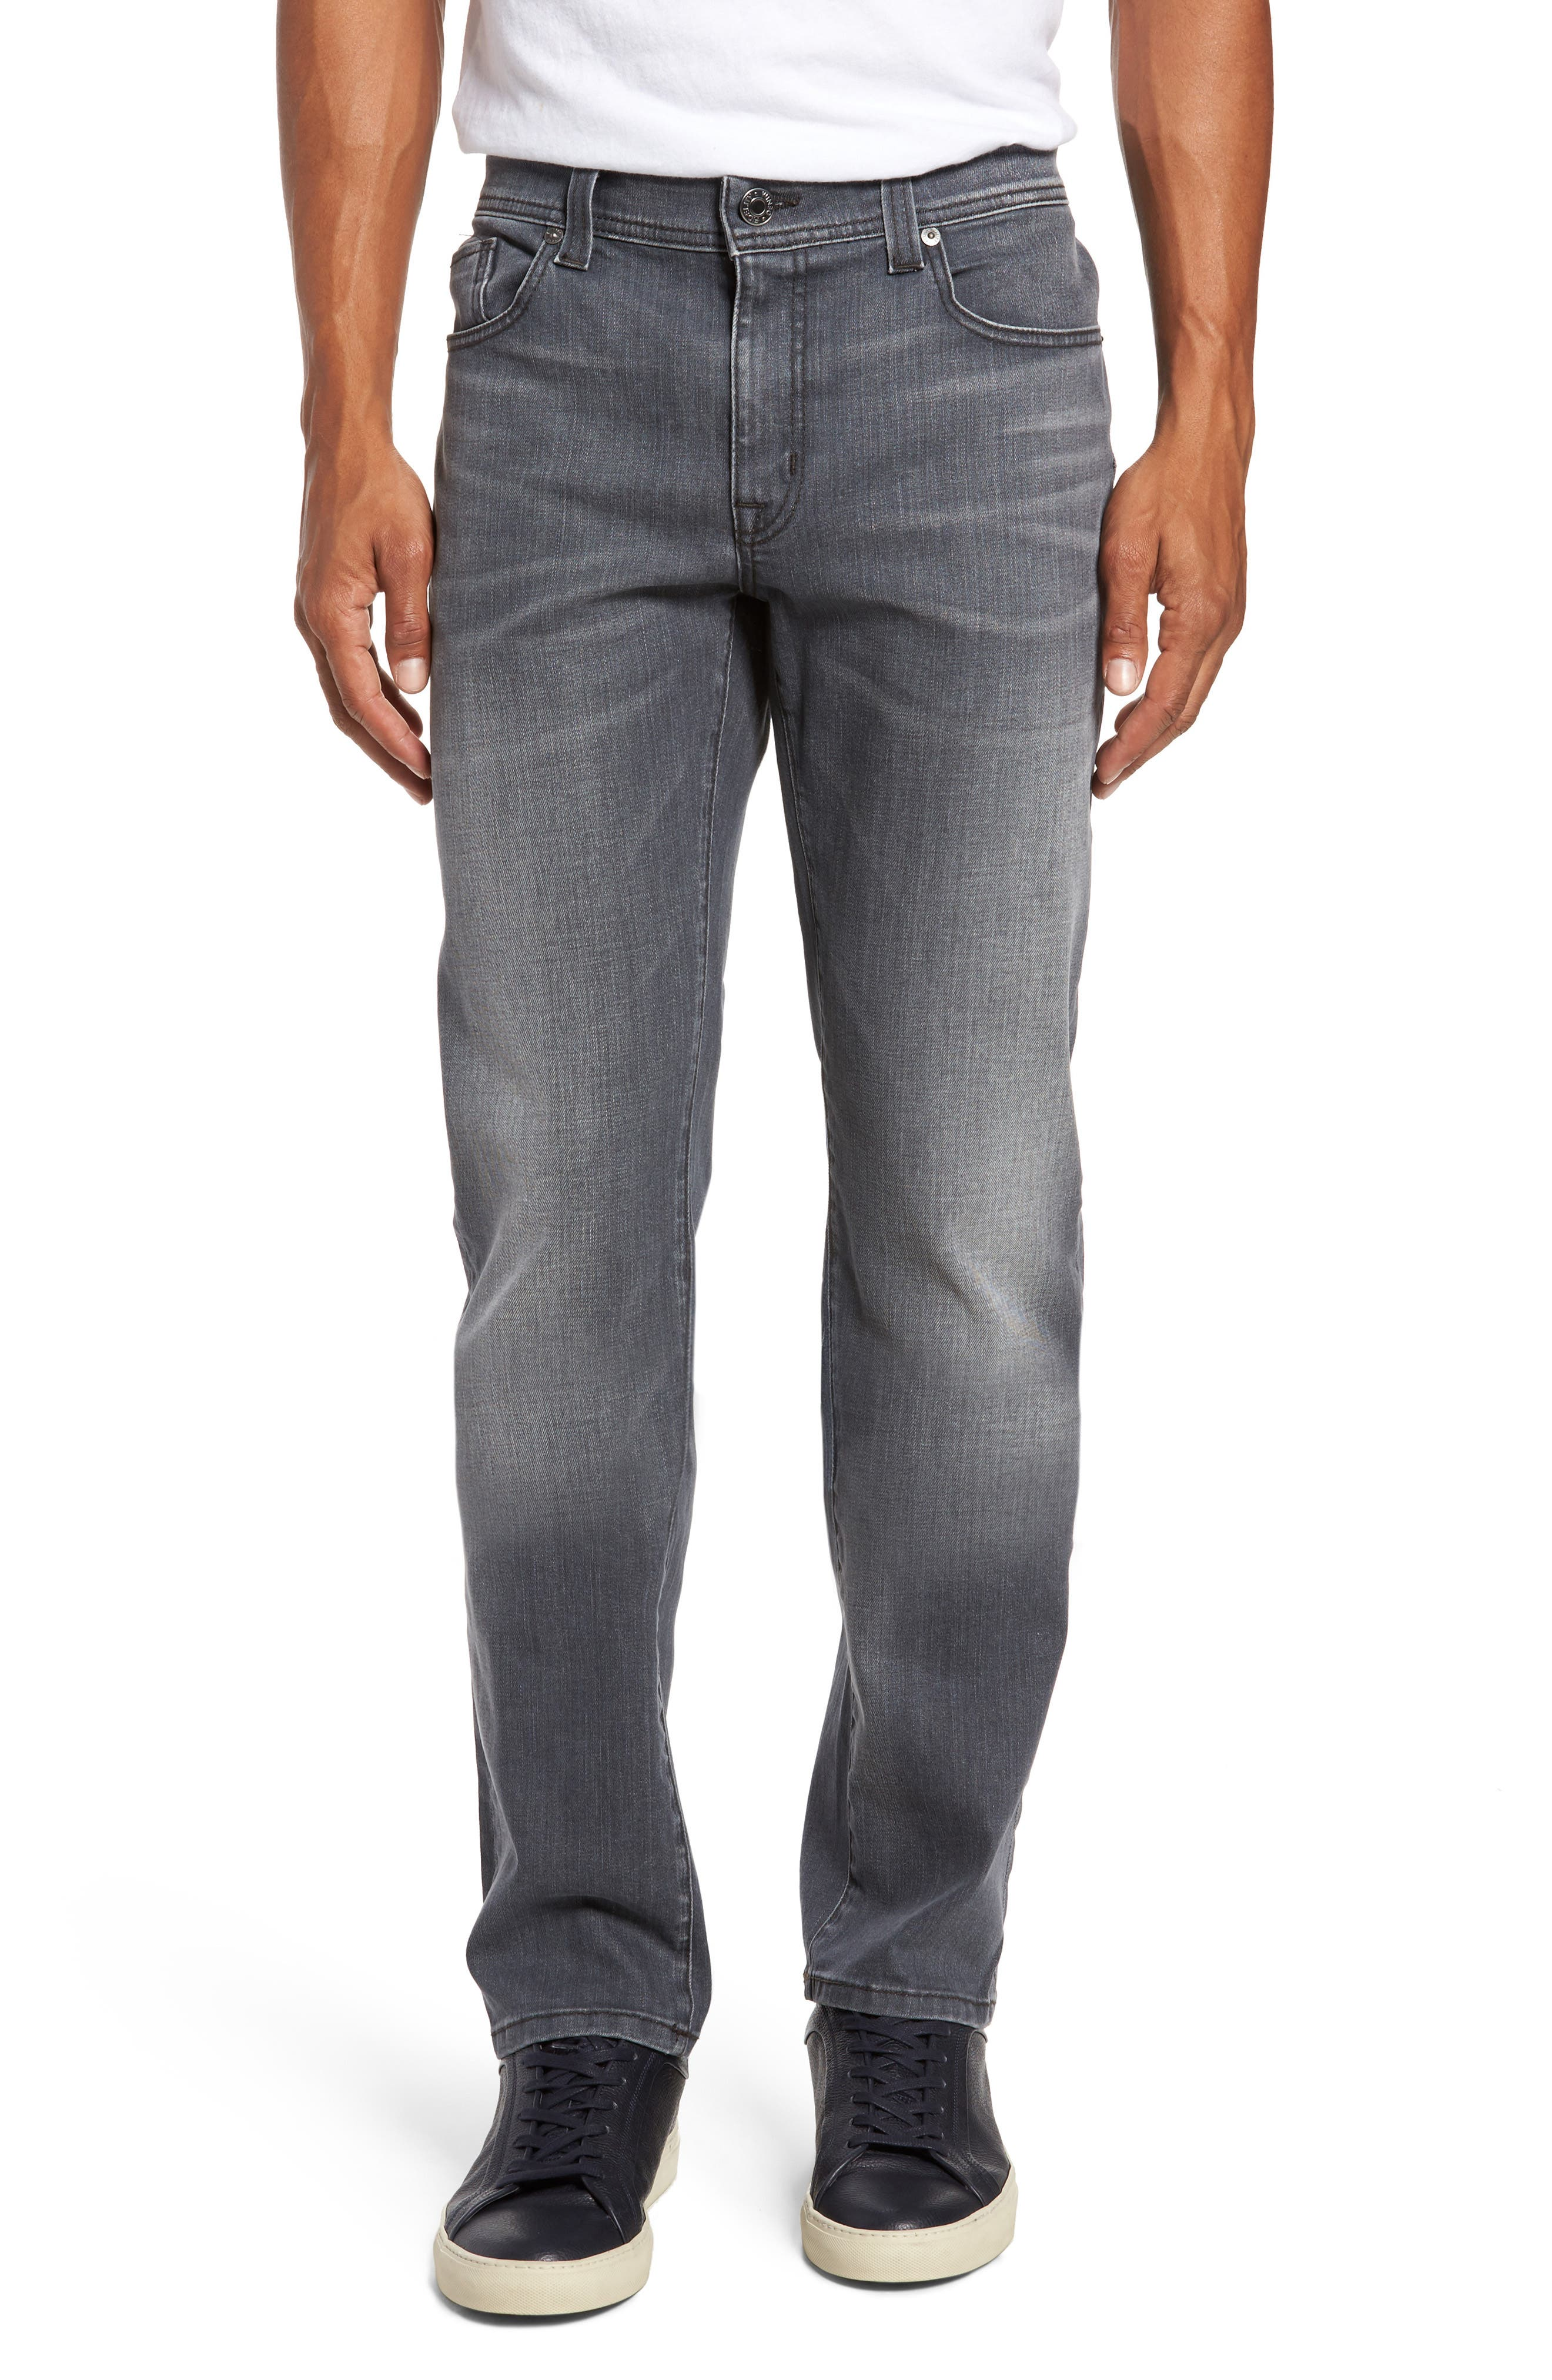 Jimmy Slim Straight Fit Jeans,                             Main thumbnail 1, color,                             Steelo Vintage